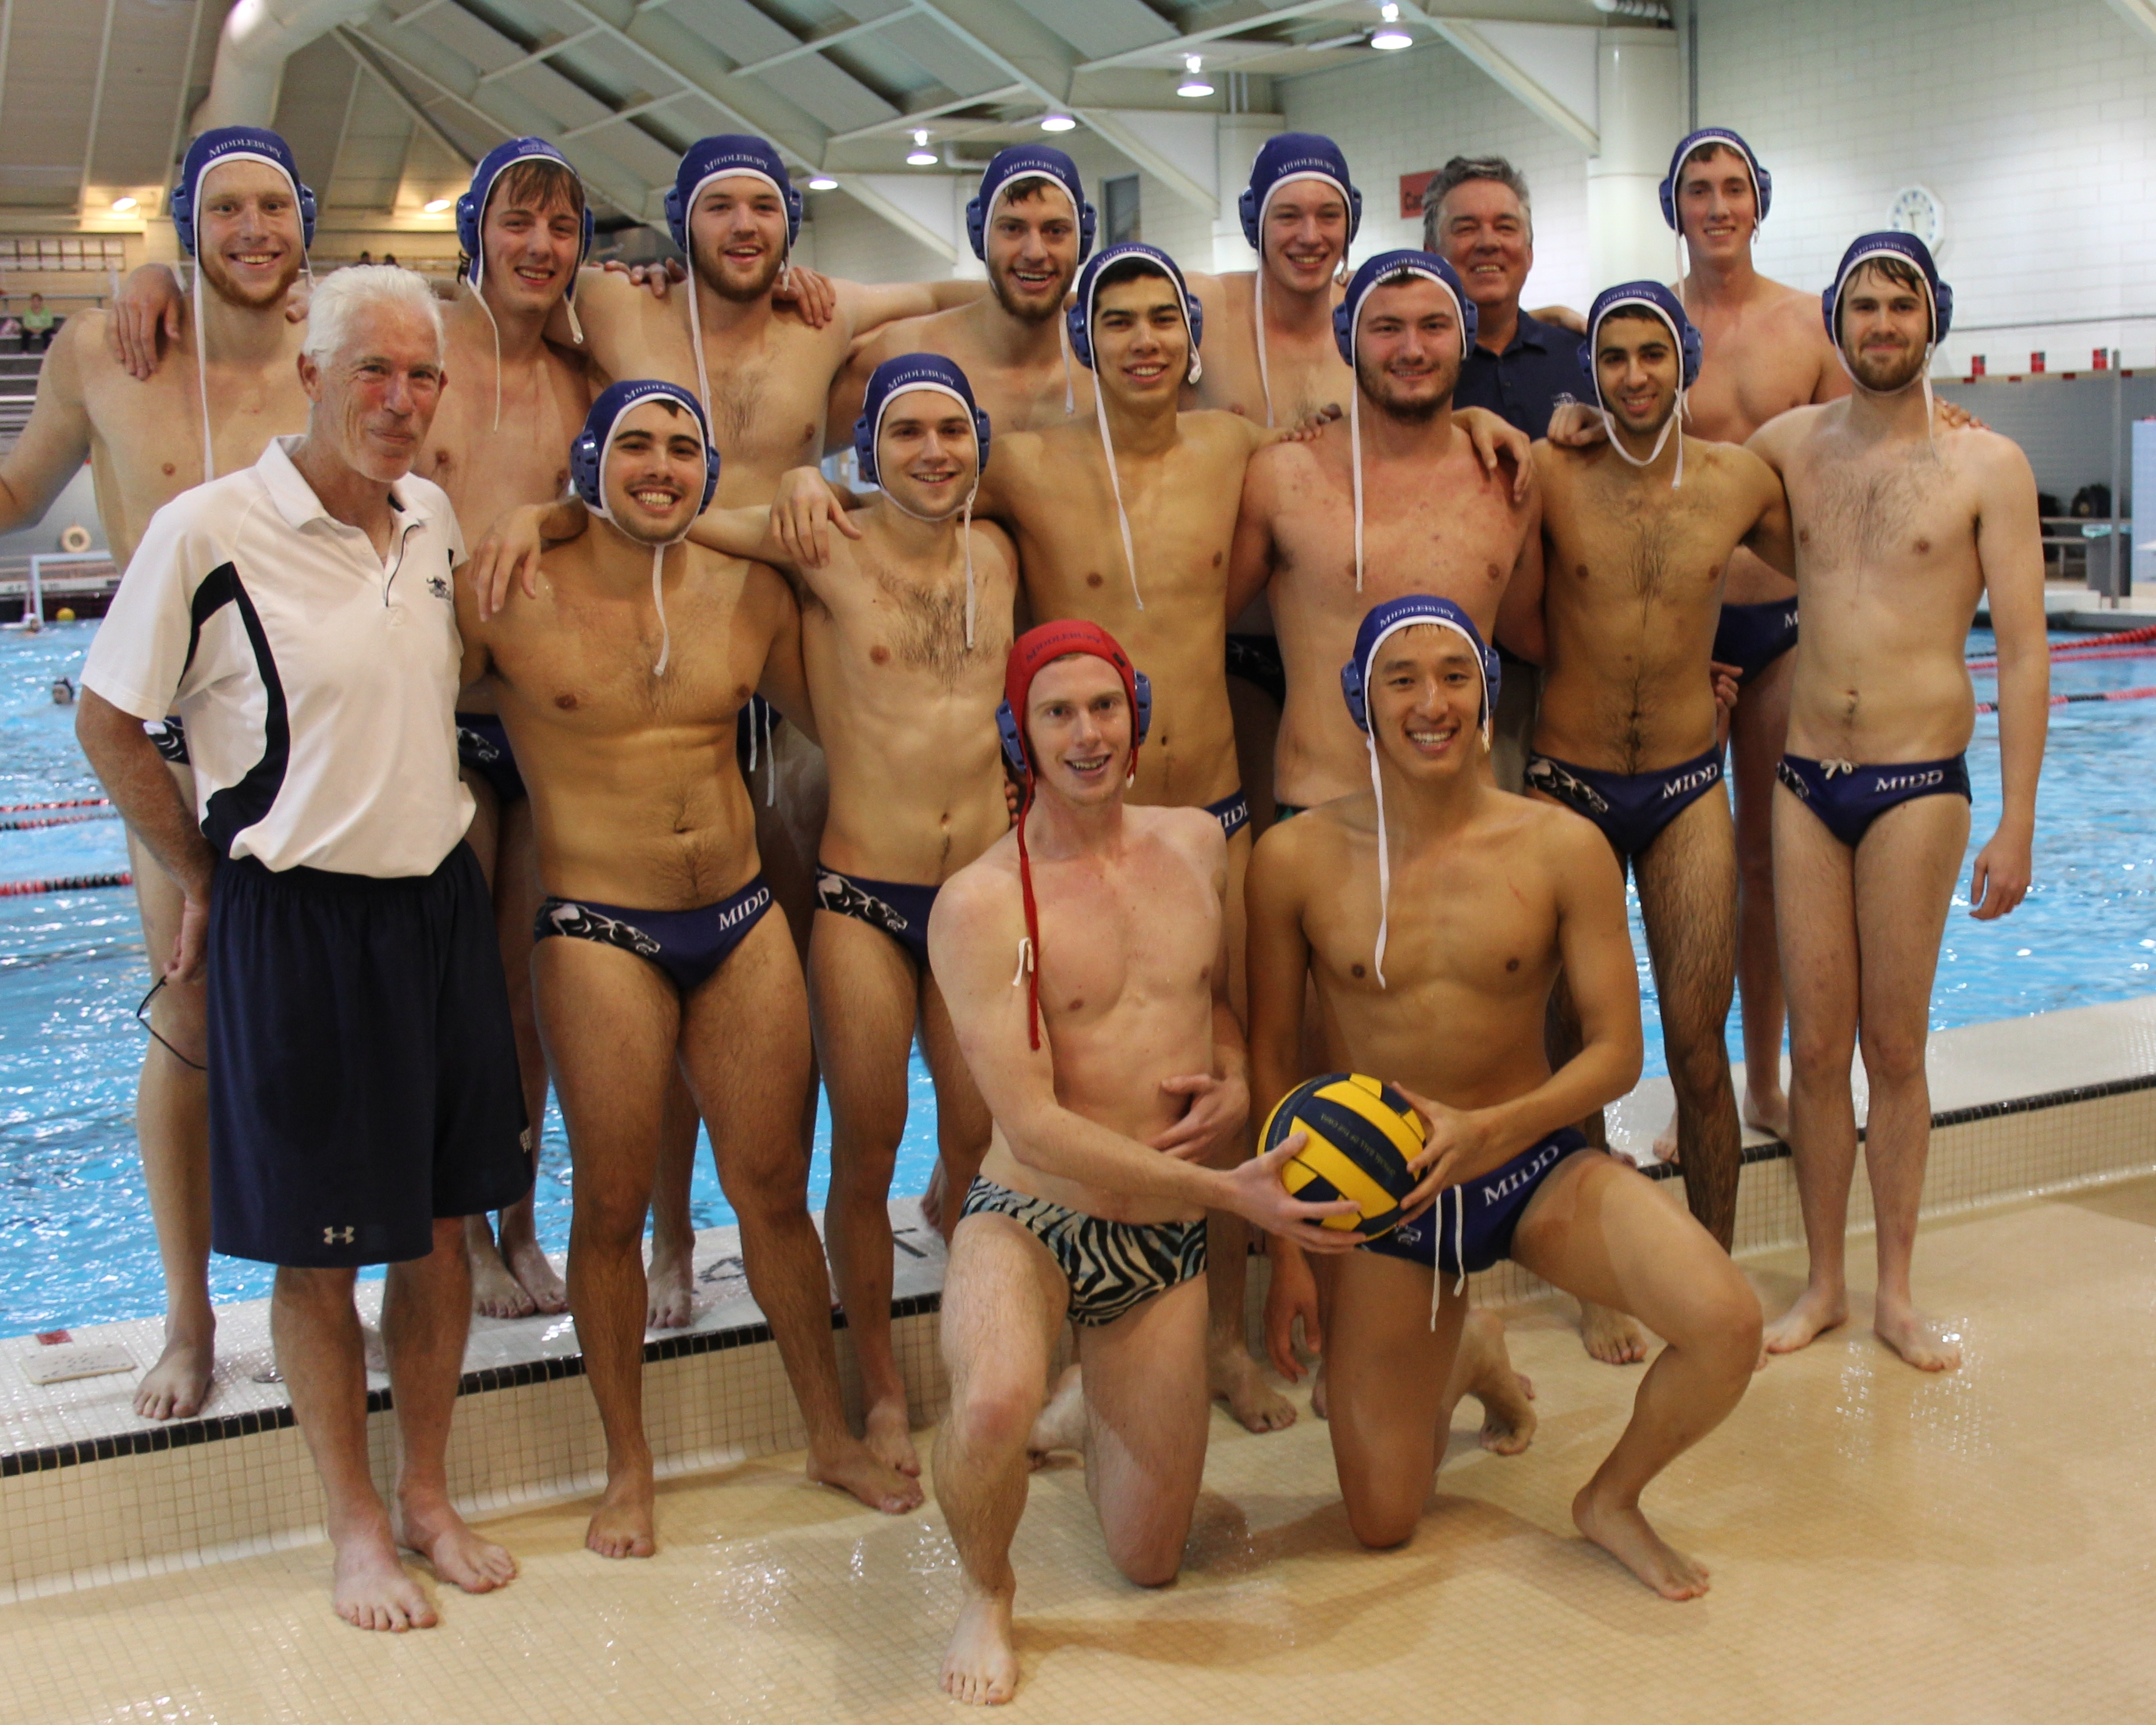 Middlebury Ends 1st Place in Division III Club New England Division